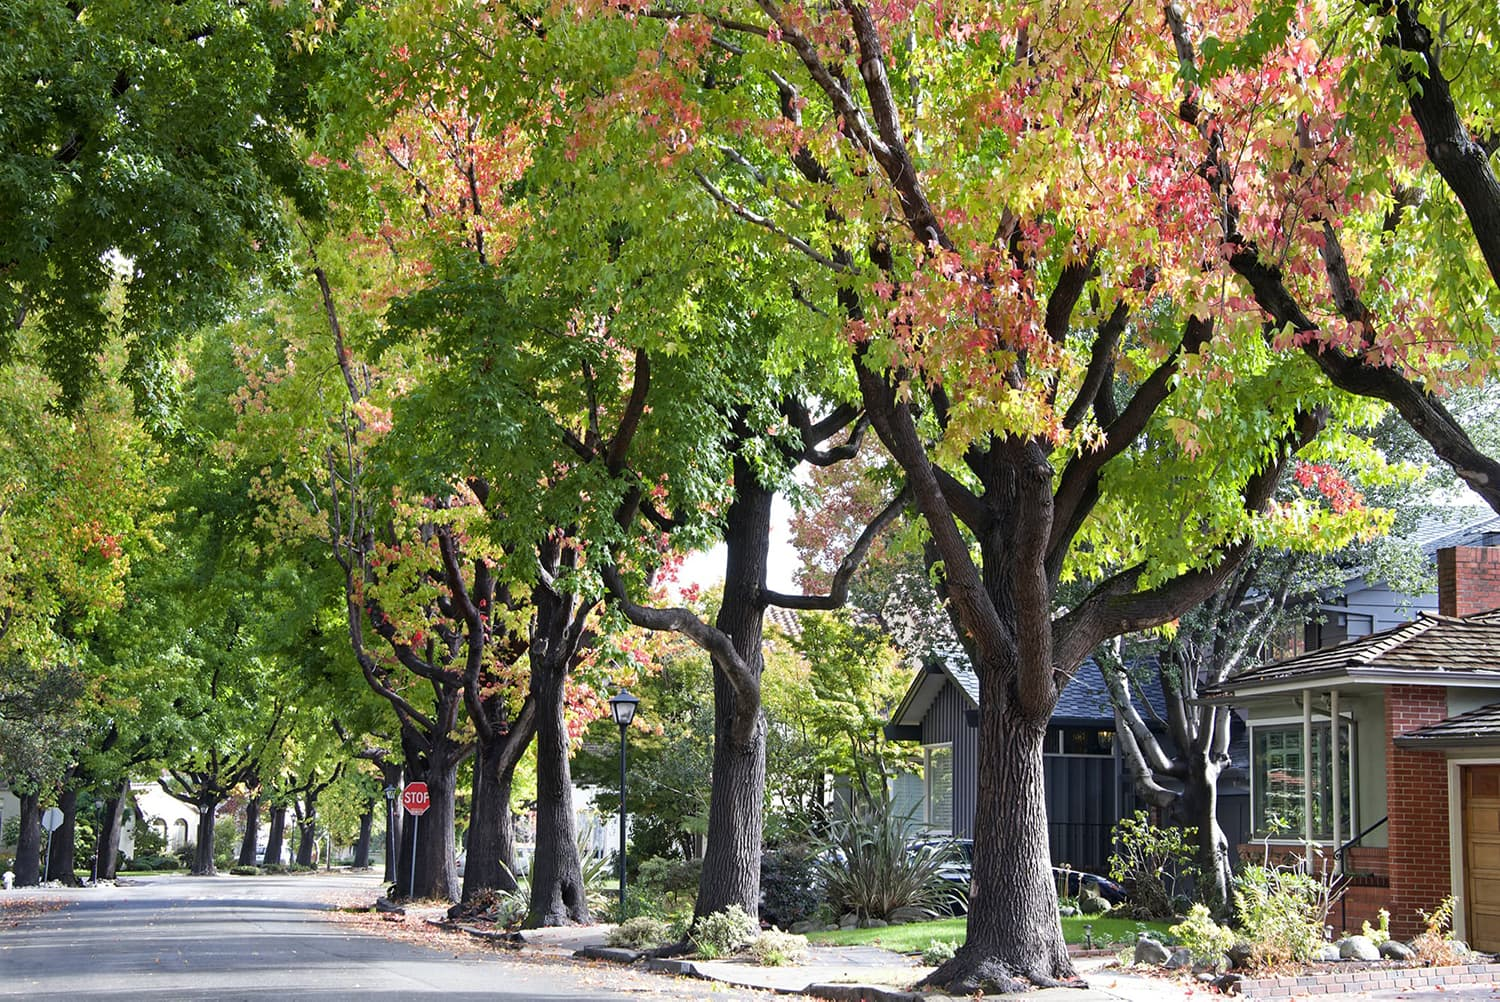 A tree-lined residential street